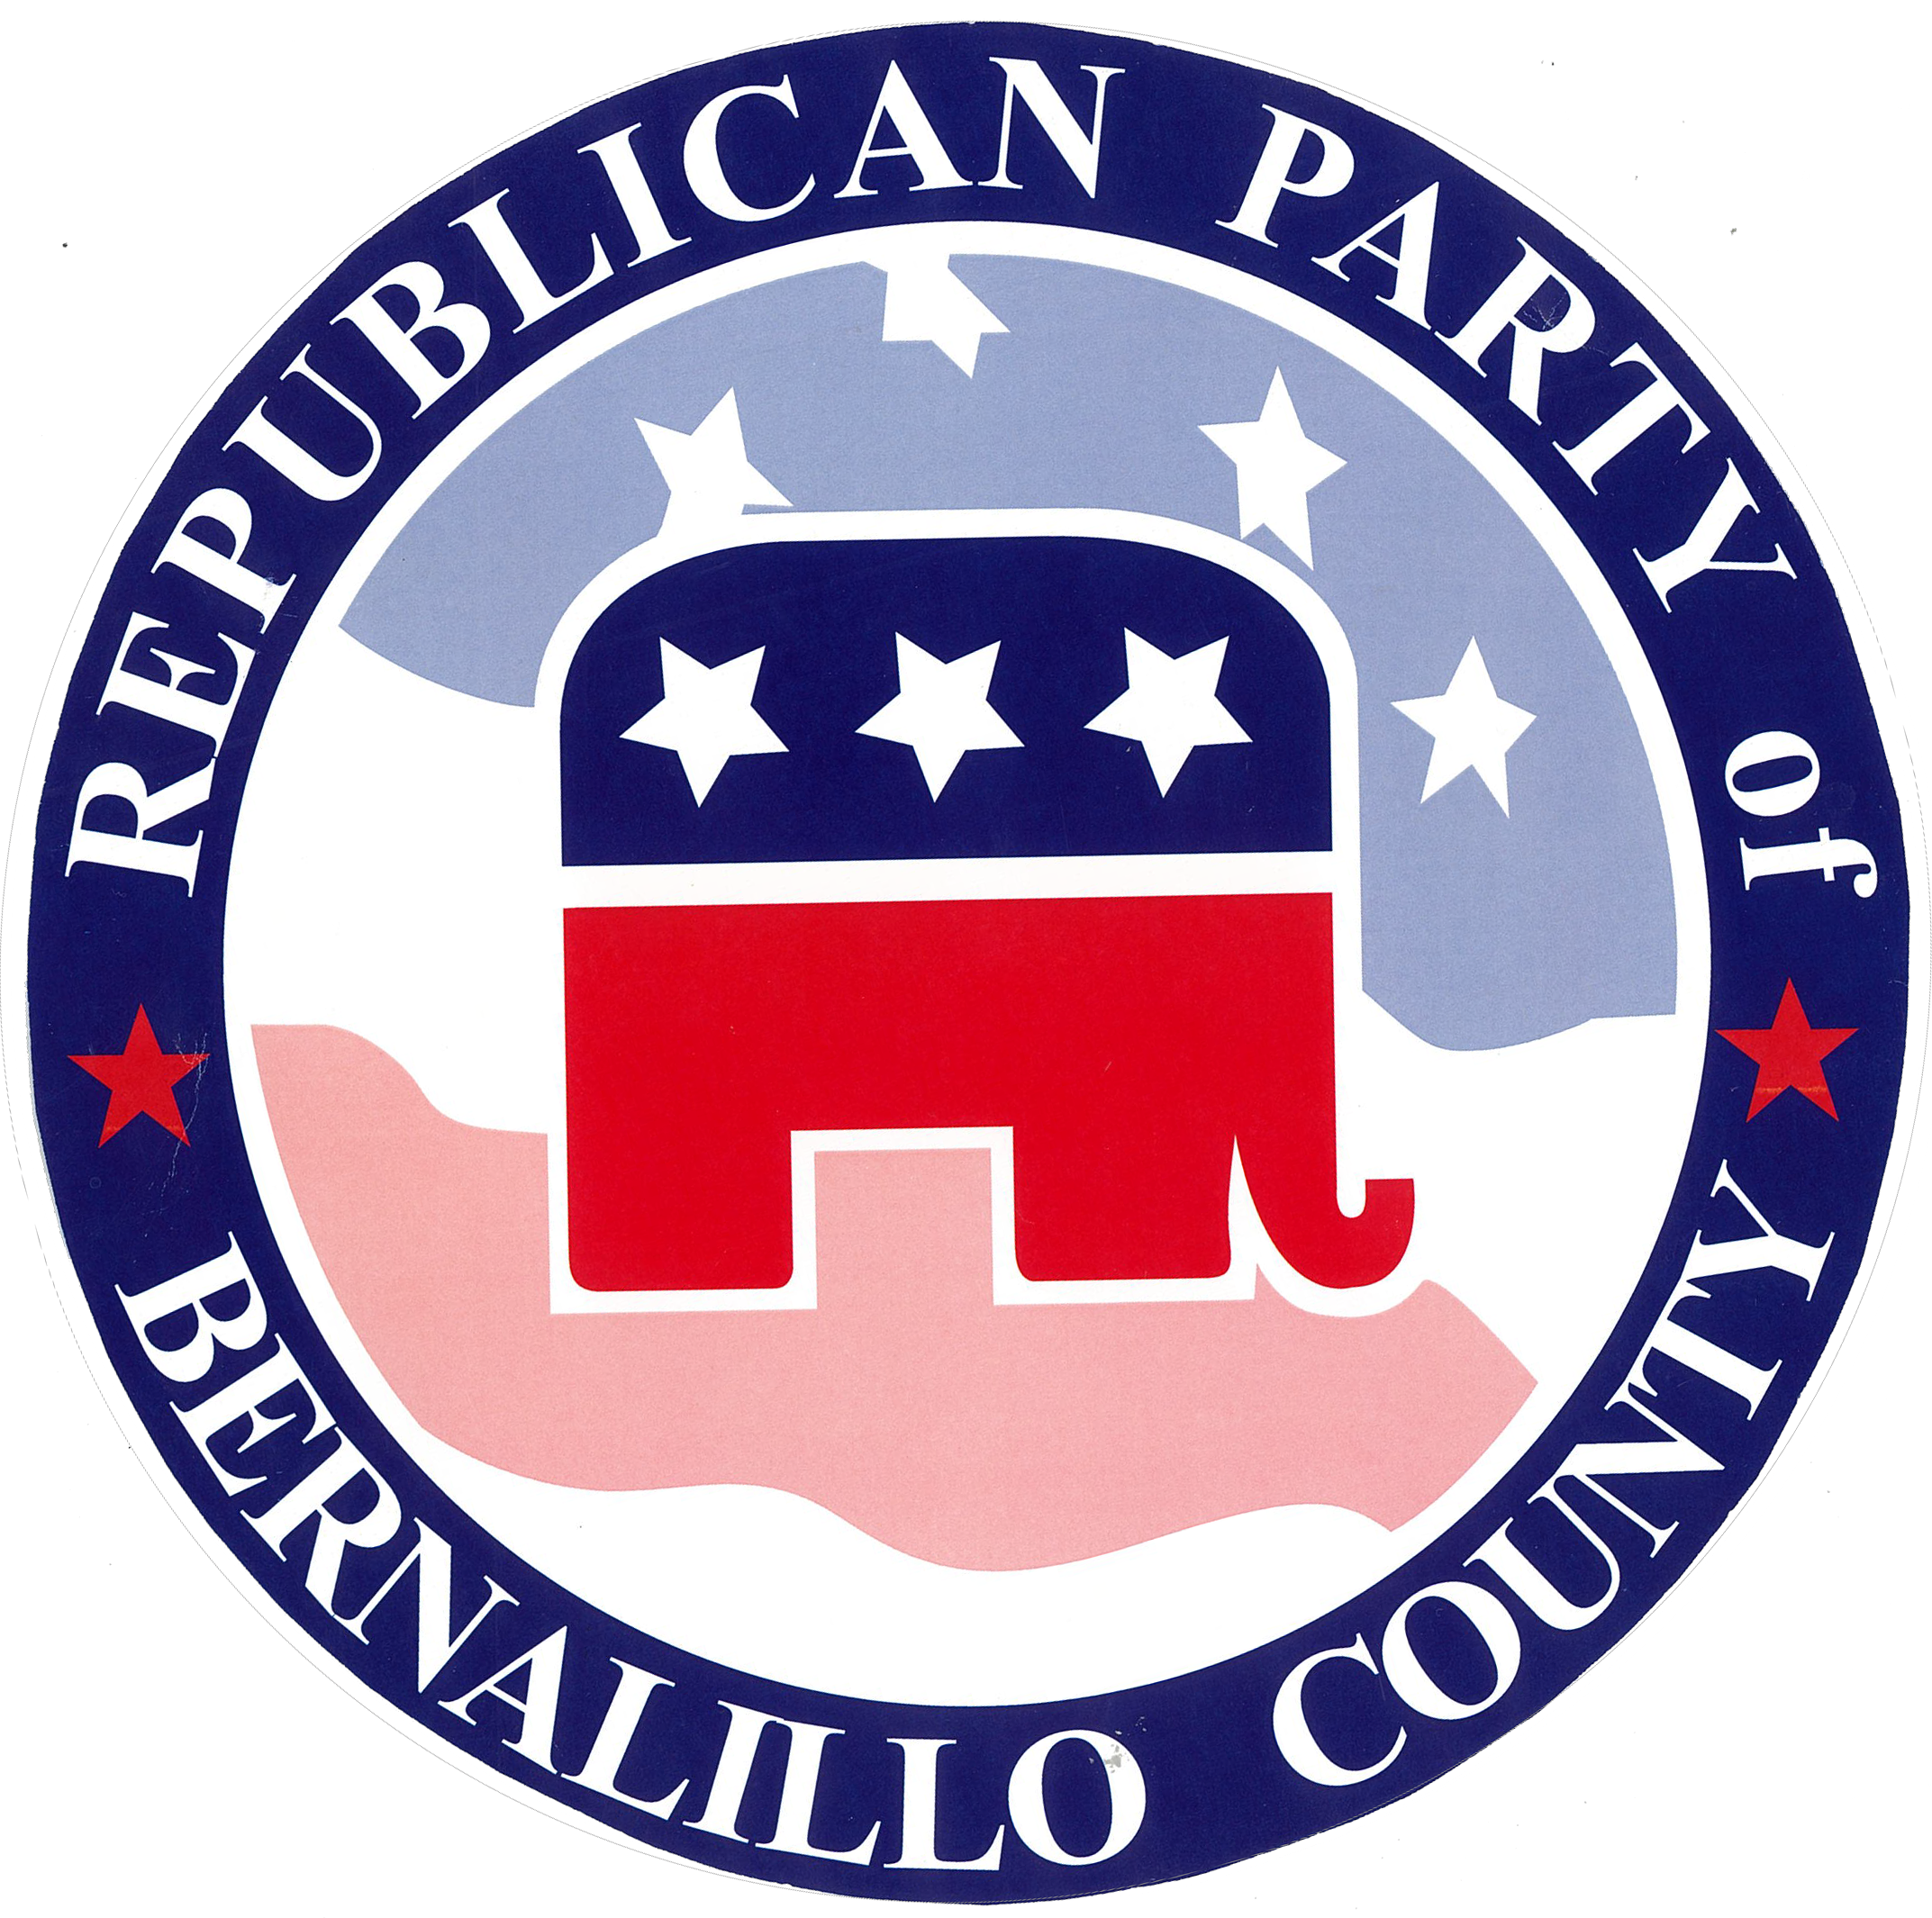 nm ward (State House Dist.) 27 republicans – next consultation – Tues., April 27th, 6:45pm); location – County Party Office & by Zoom (see Alerts/Events page for details).